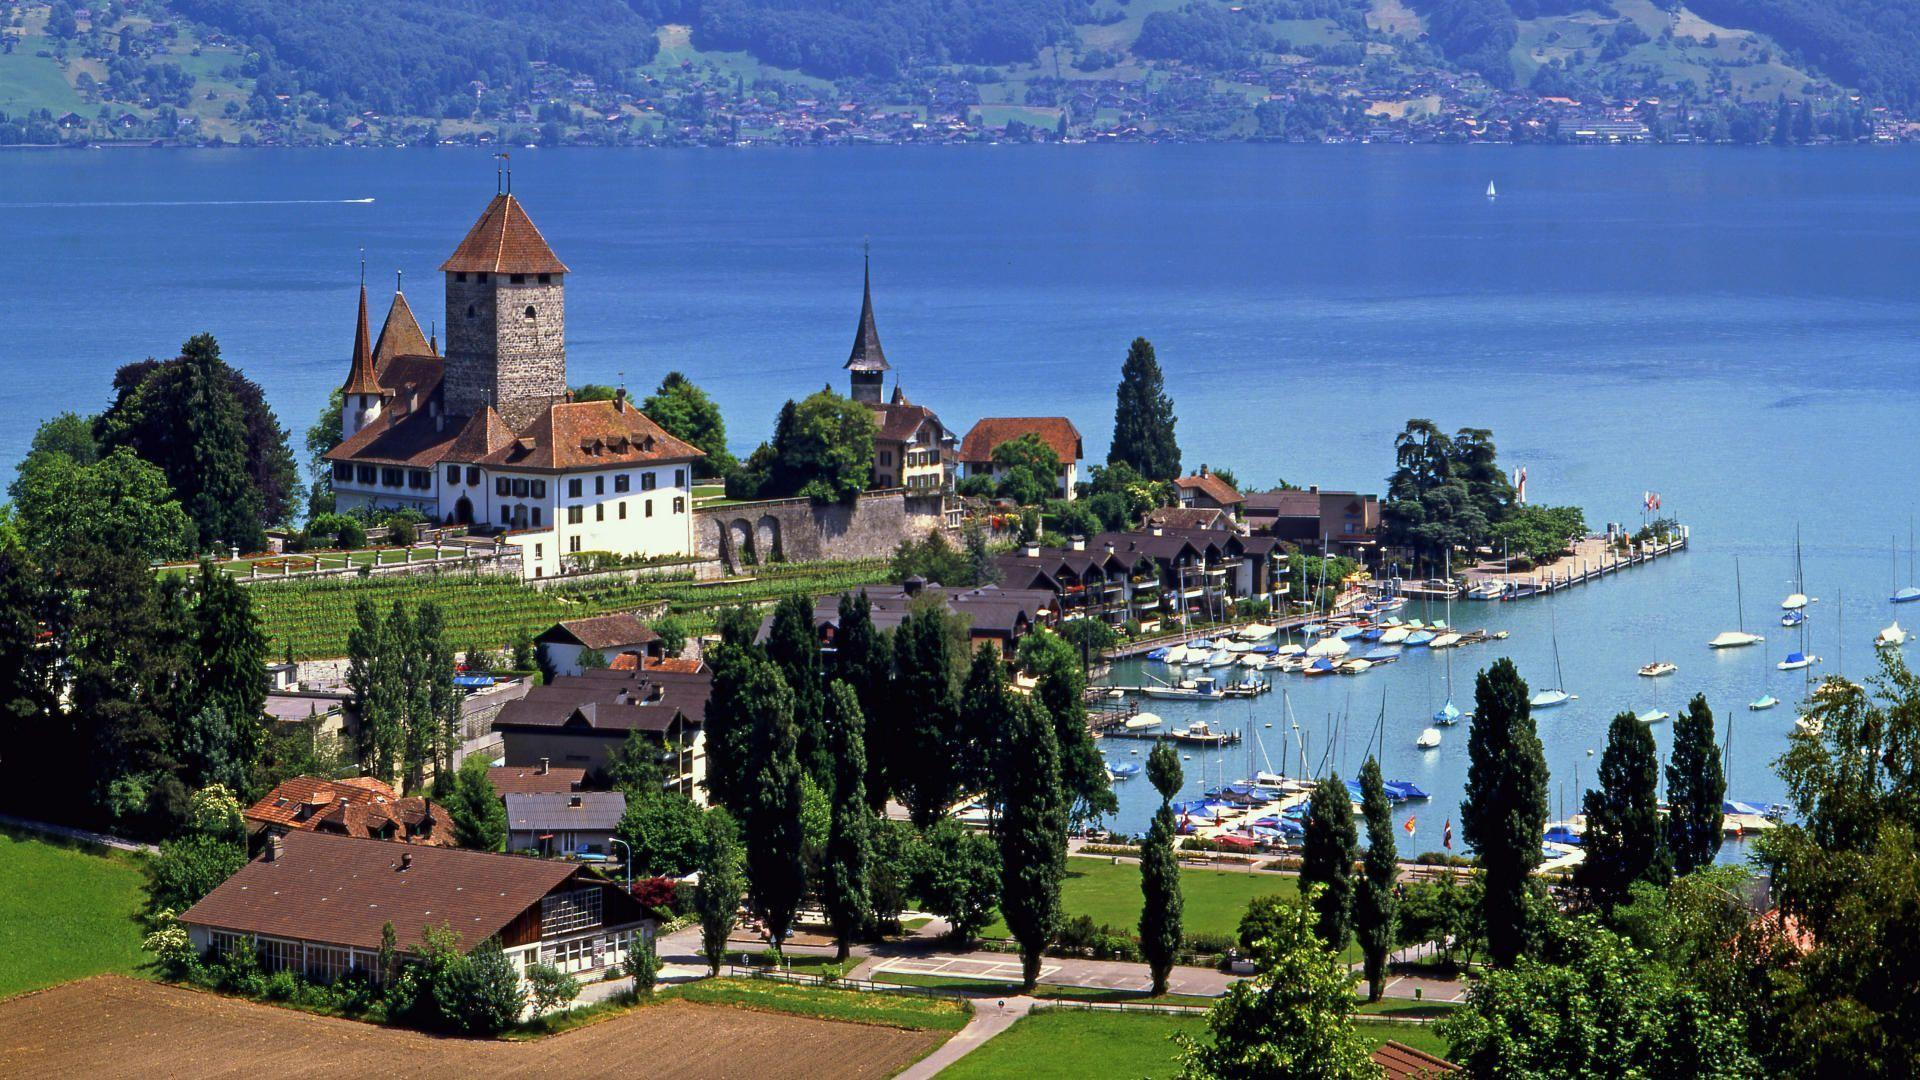 Spiez castle lake thun switzerland wallpaper Stock Free Images